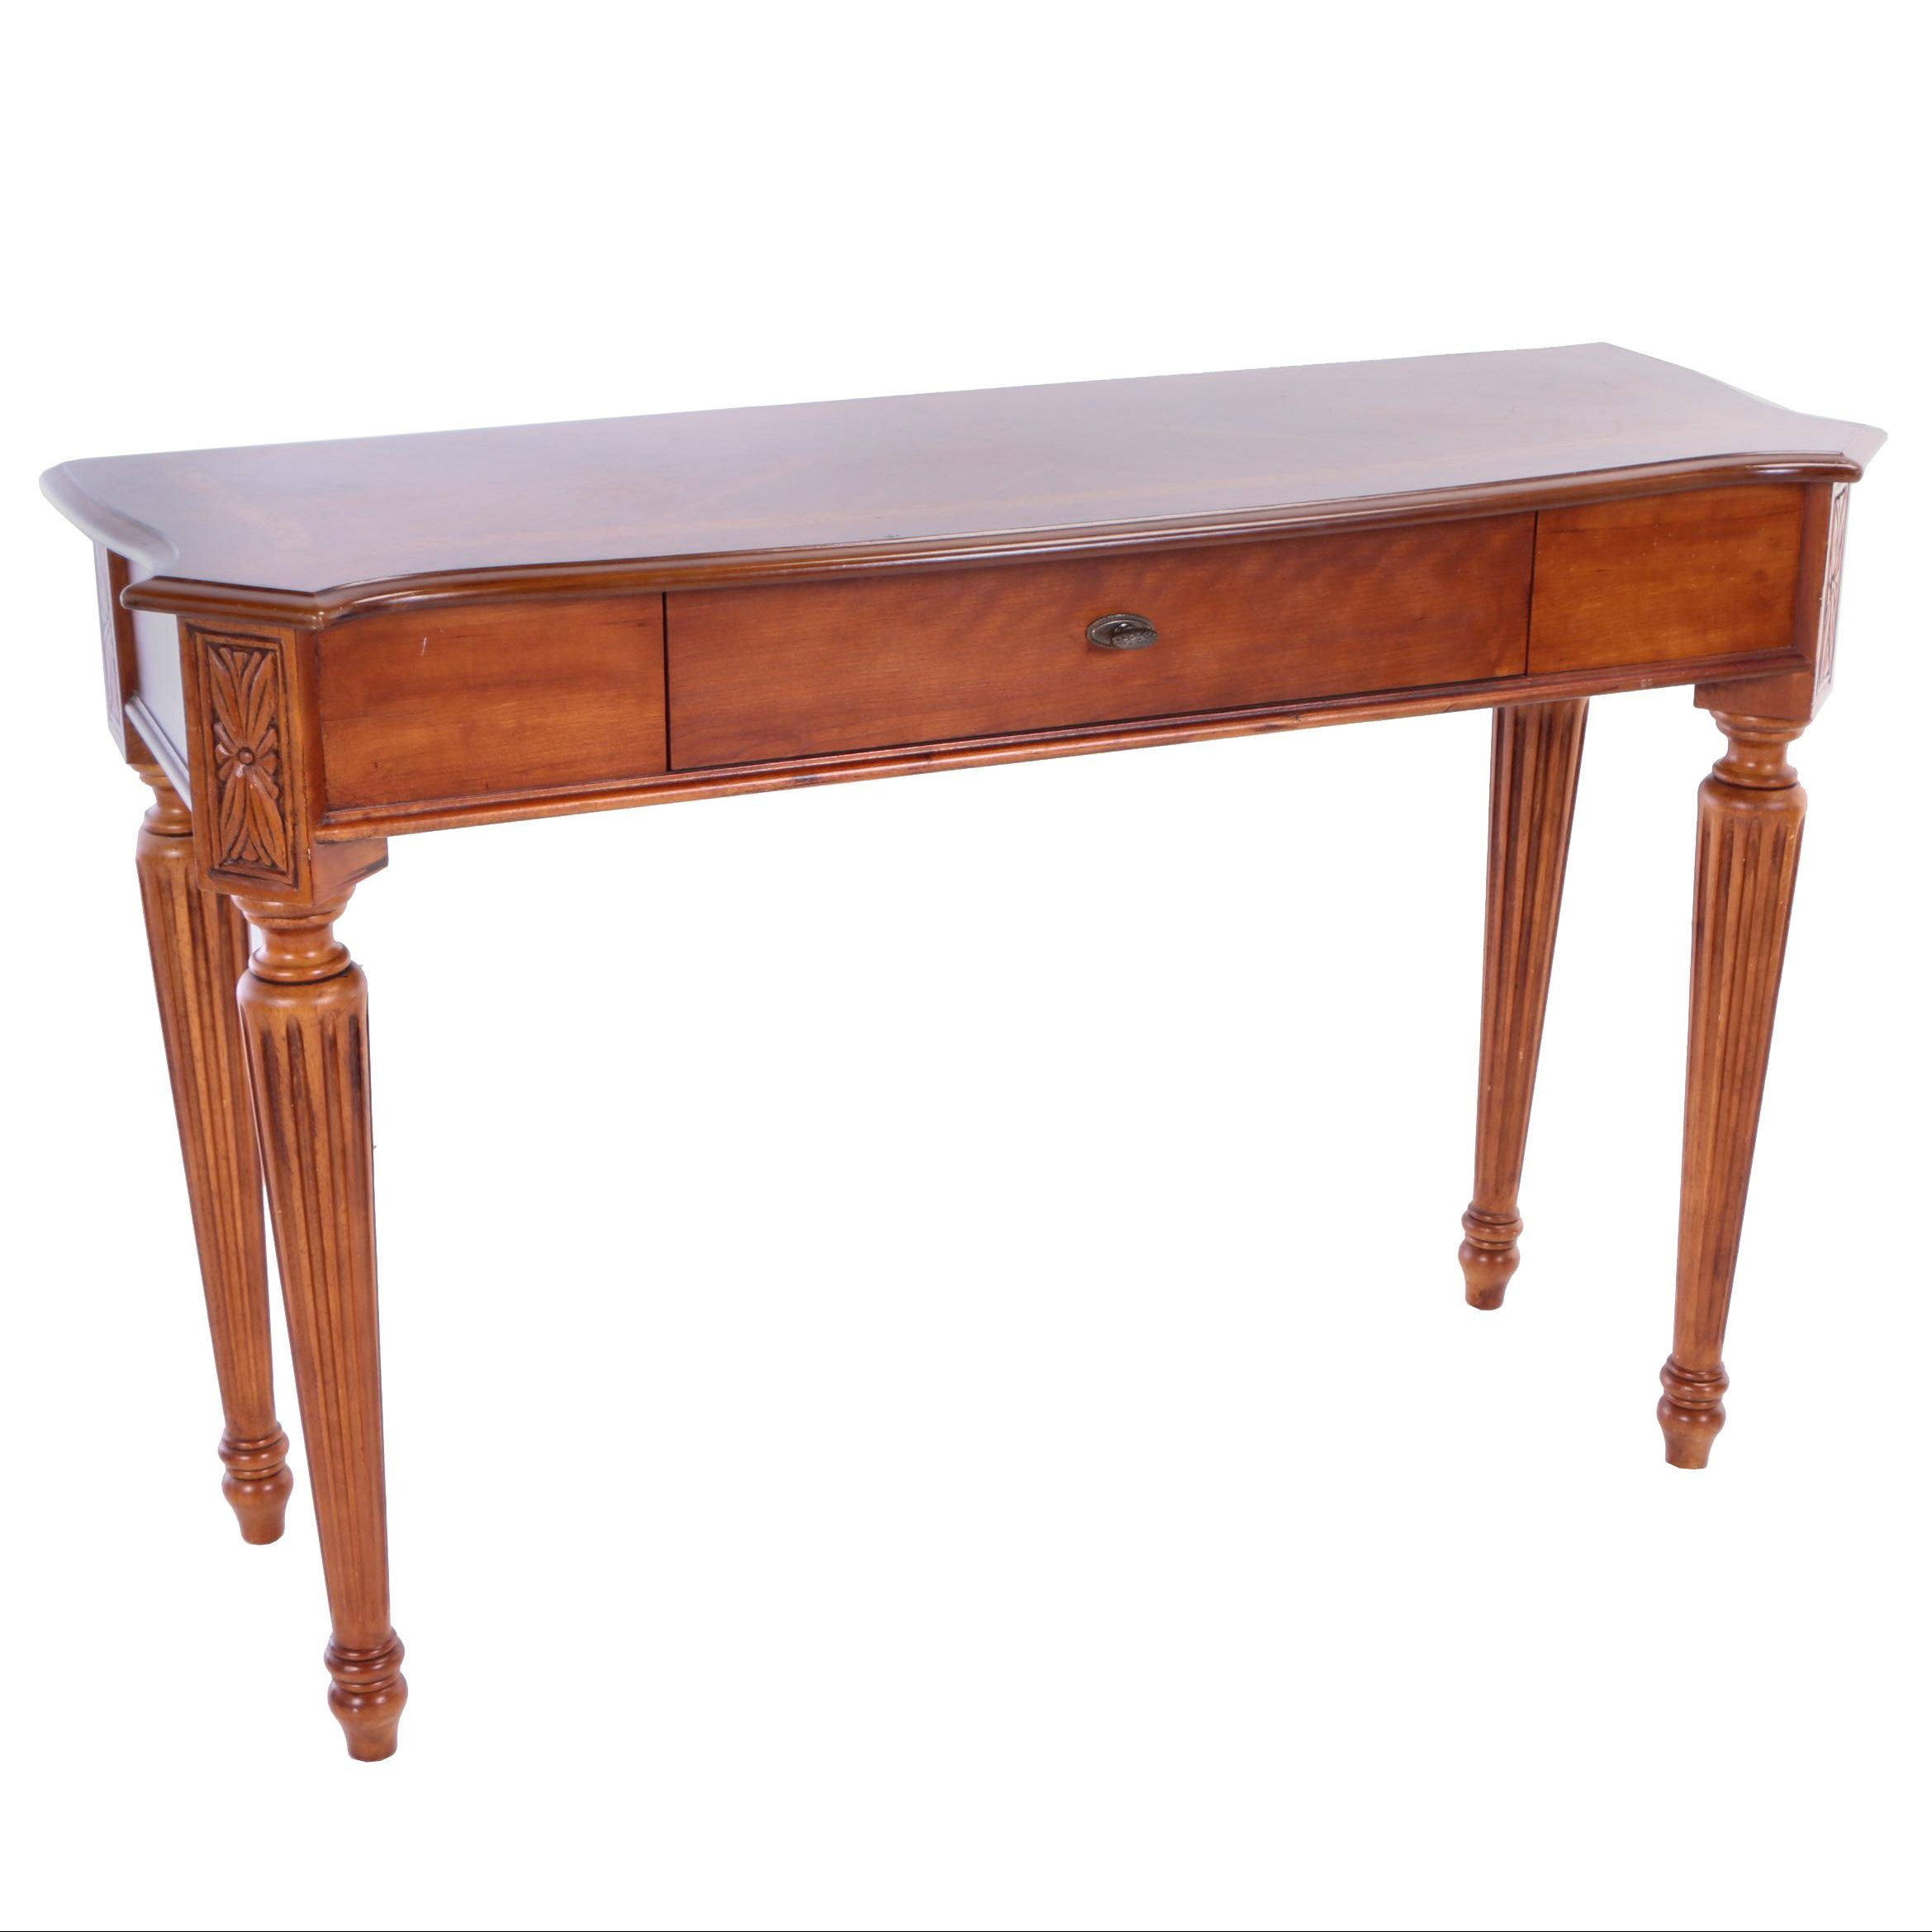 Contemporary Louis XVI Style Cherrywood-Veneered and Oak-Crossbanded Sofa Table